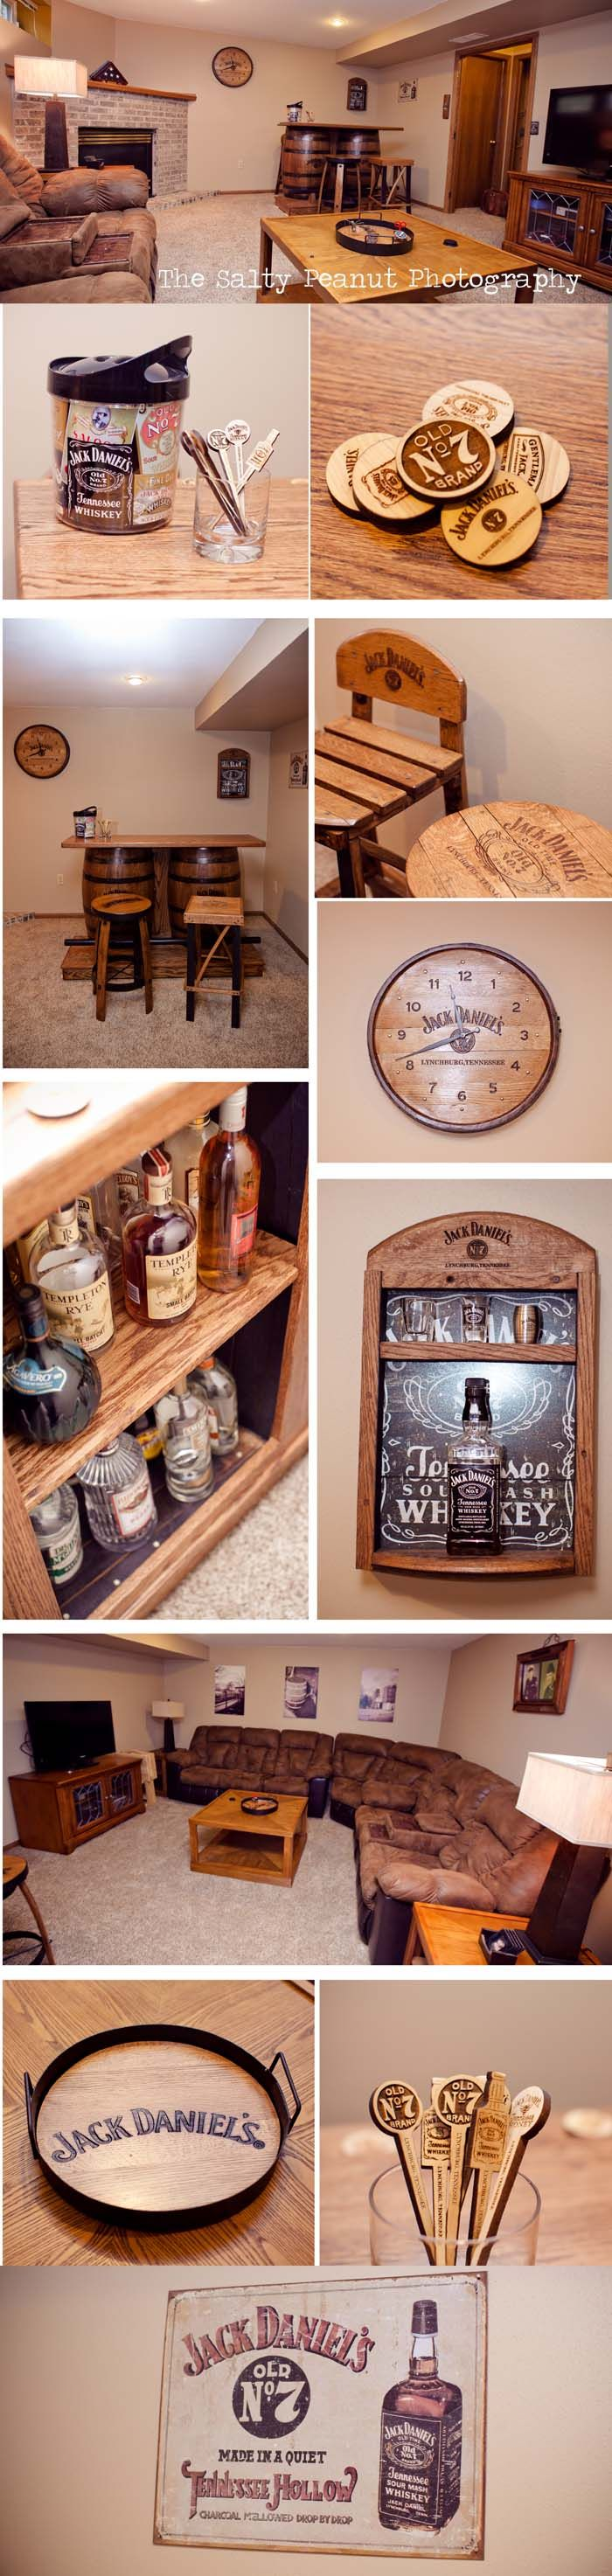 Jack Daniels Man Cave / Basement Bar... finally complete! This is too awesome!!!